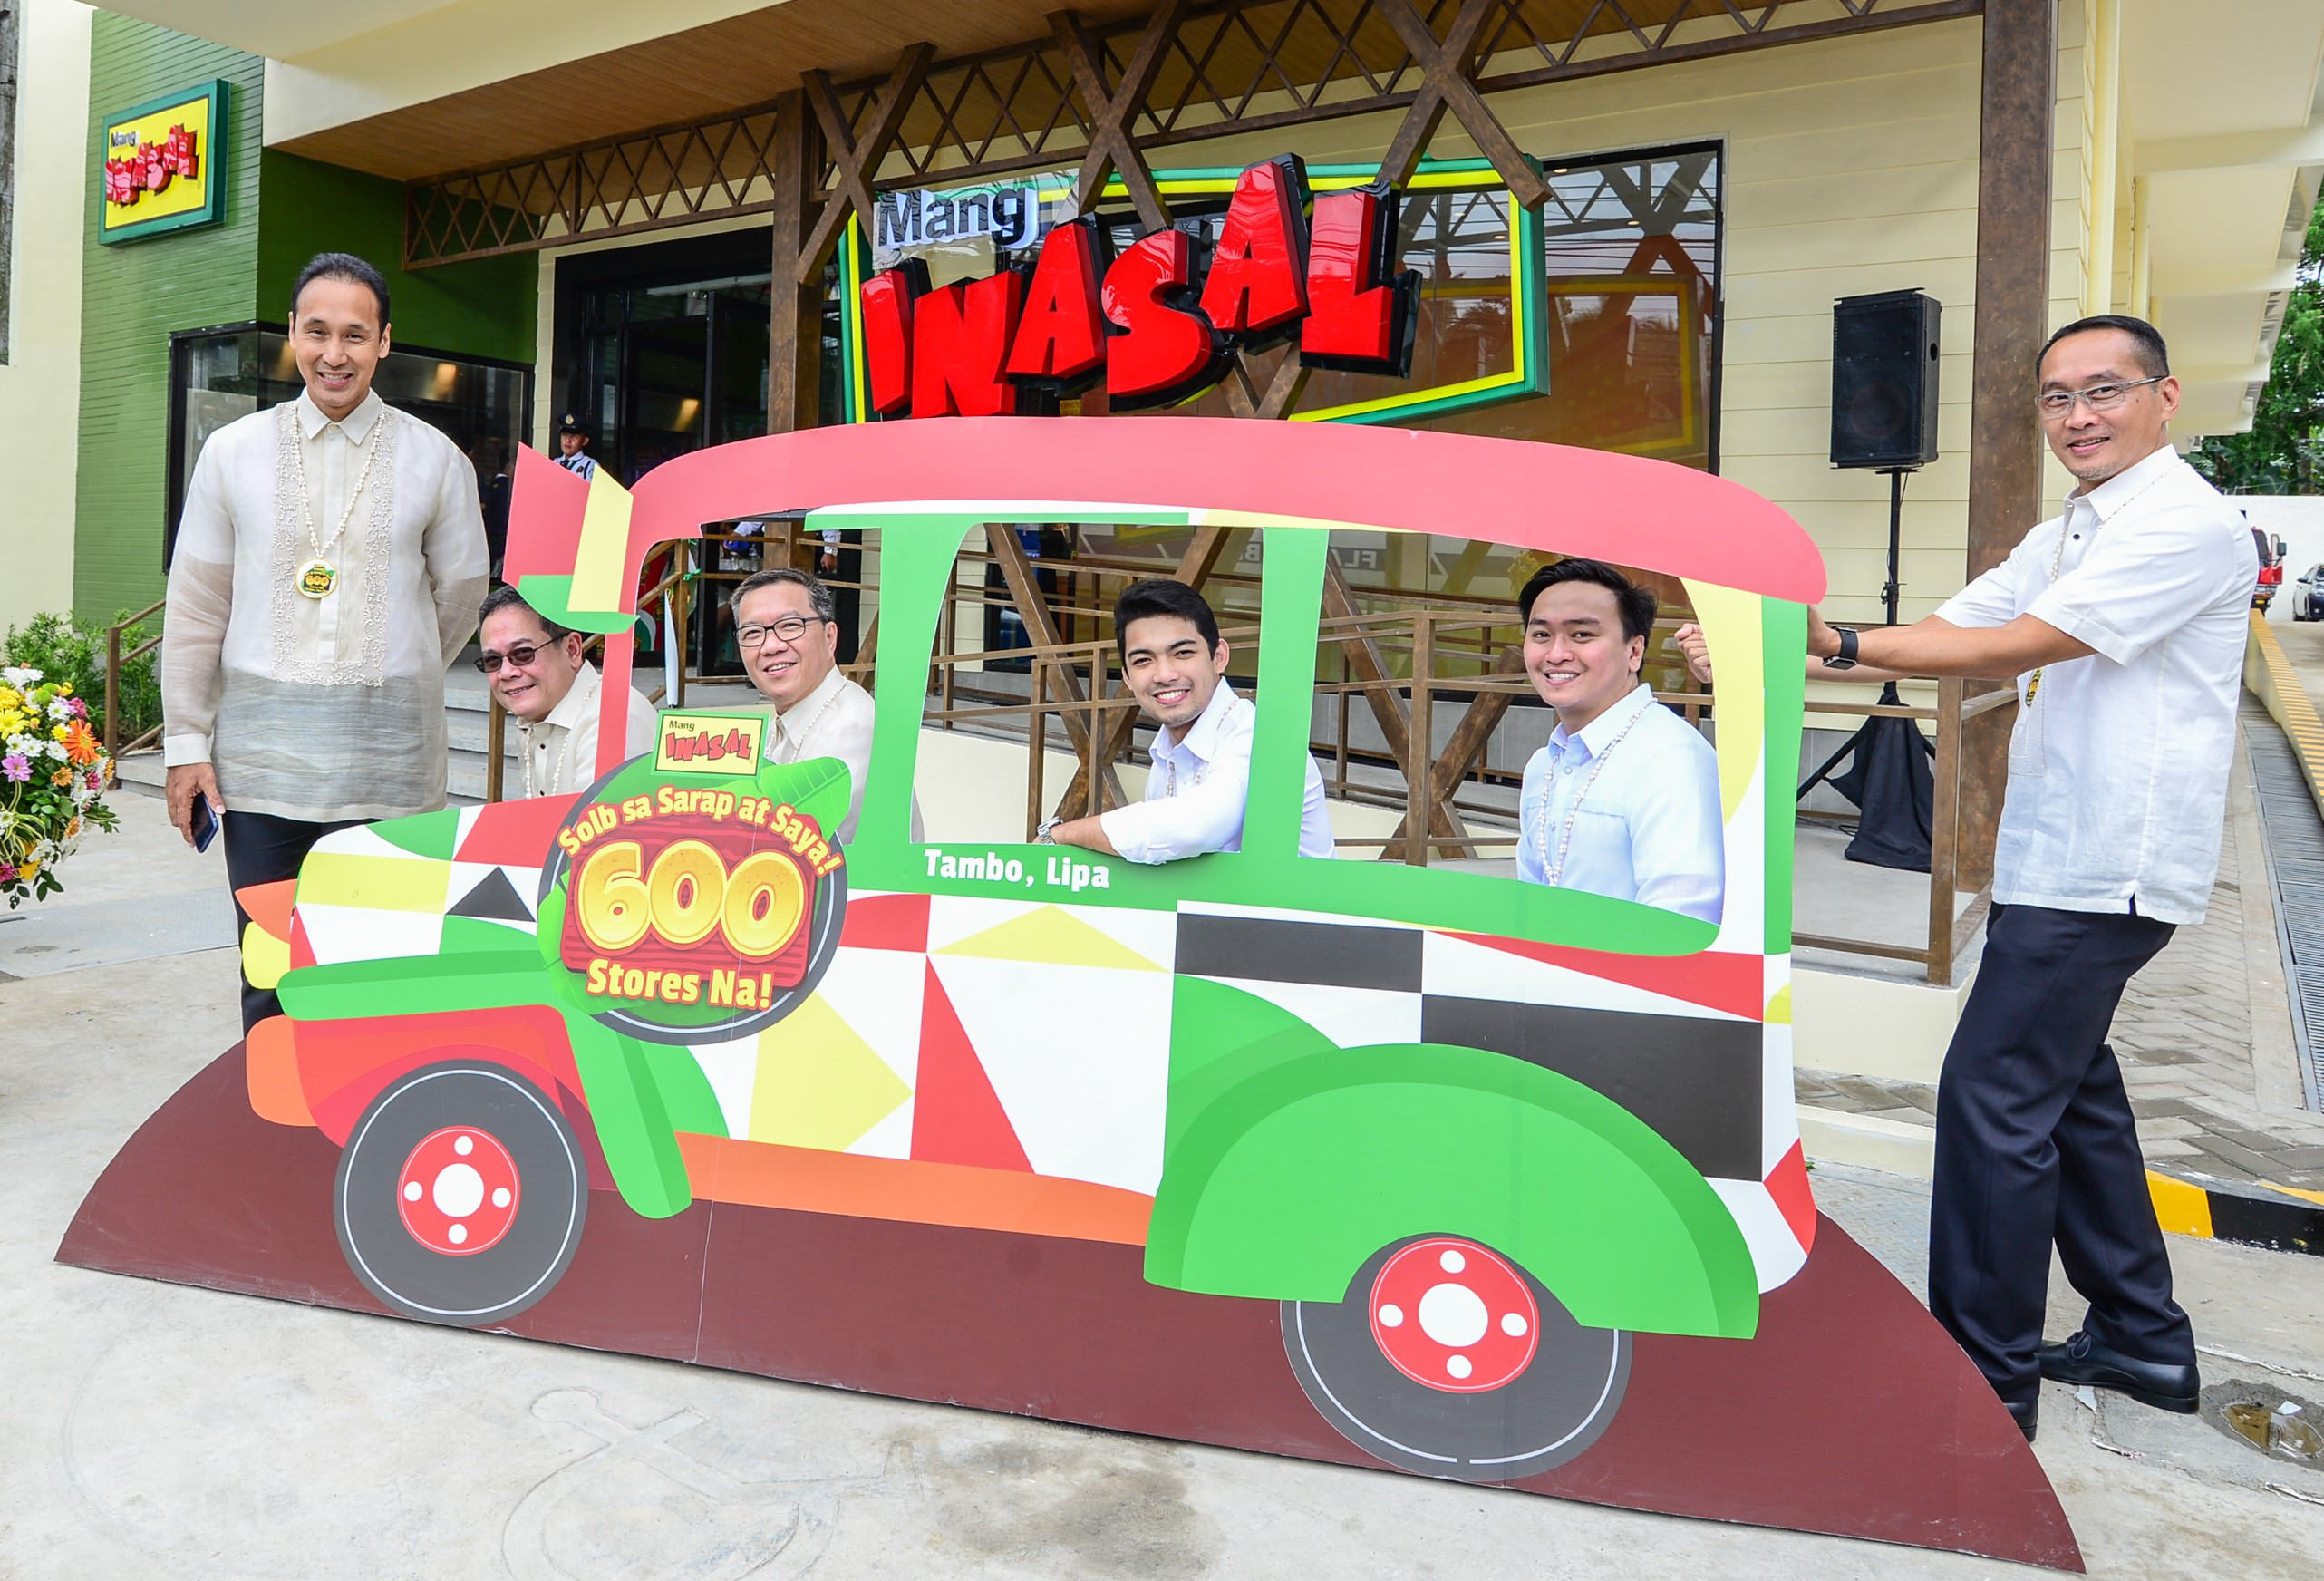 Lipa City Vice Mayor Mark Luancing (center) and Atty. Willy Rivera (second to the right) pose for a posterity shot at the Mang Inasal jeepney. They are joined by JFC Country Business Group Head for the Philippines Joseph Tanbuntiong (third from left), MI Business Unit Head Jojo Subido (second from left) and Franchisee Eric Reyes (left) and Managing Director Eugene Reyes.